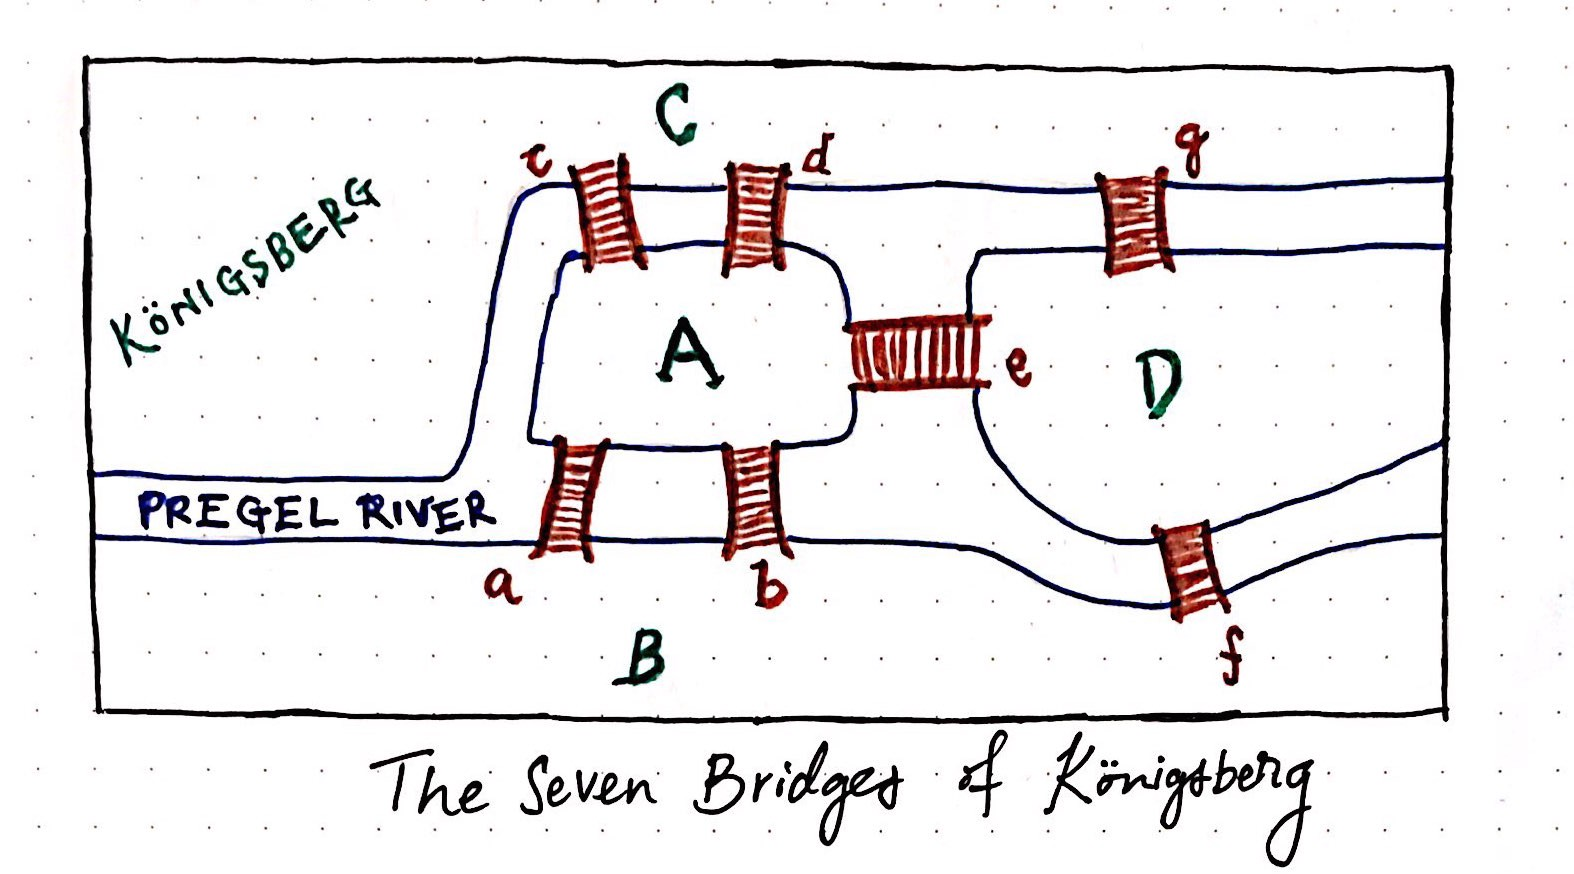 konigsberg bridge problem How do you solve konigsberg bridge problem it has been proved impossible as normally laid out.